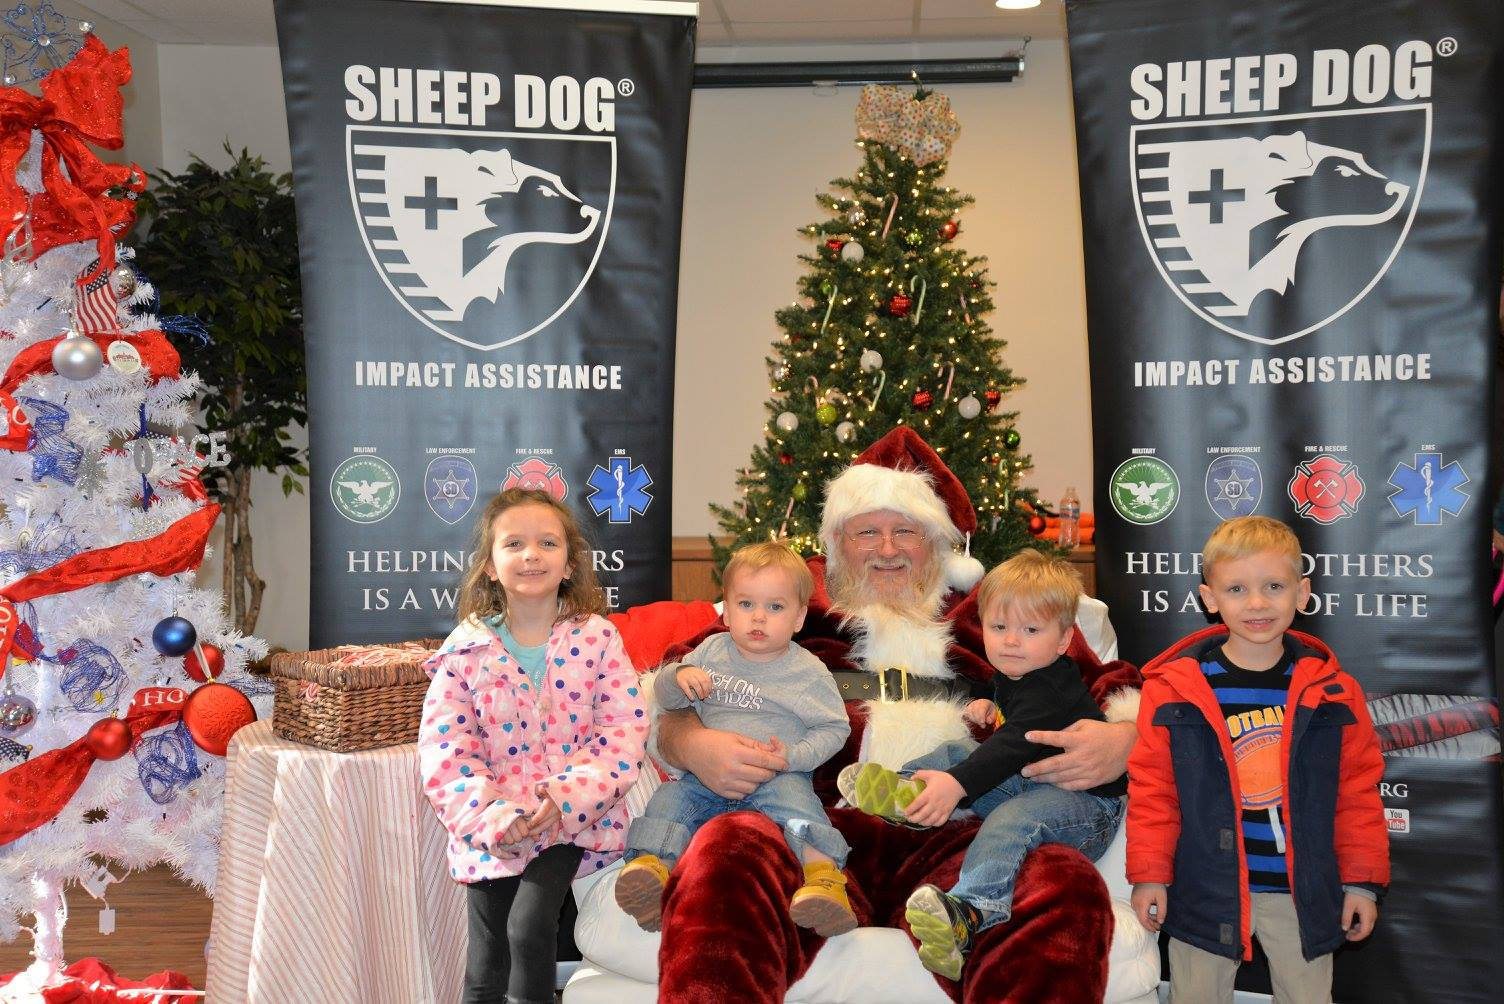 Christmas Outreach Makes Holiday Bright for Sheep Dog Families in Need